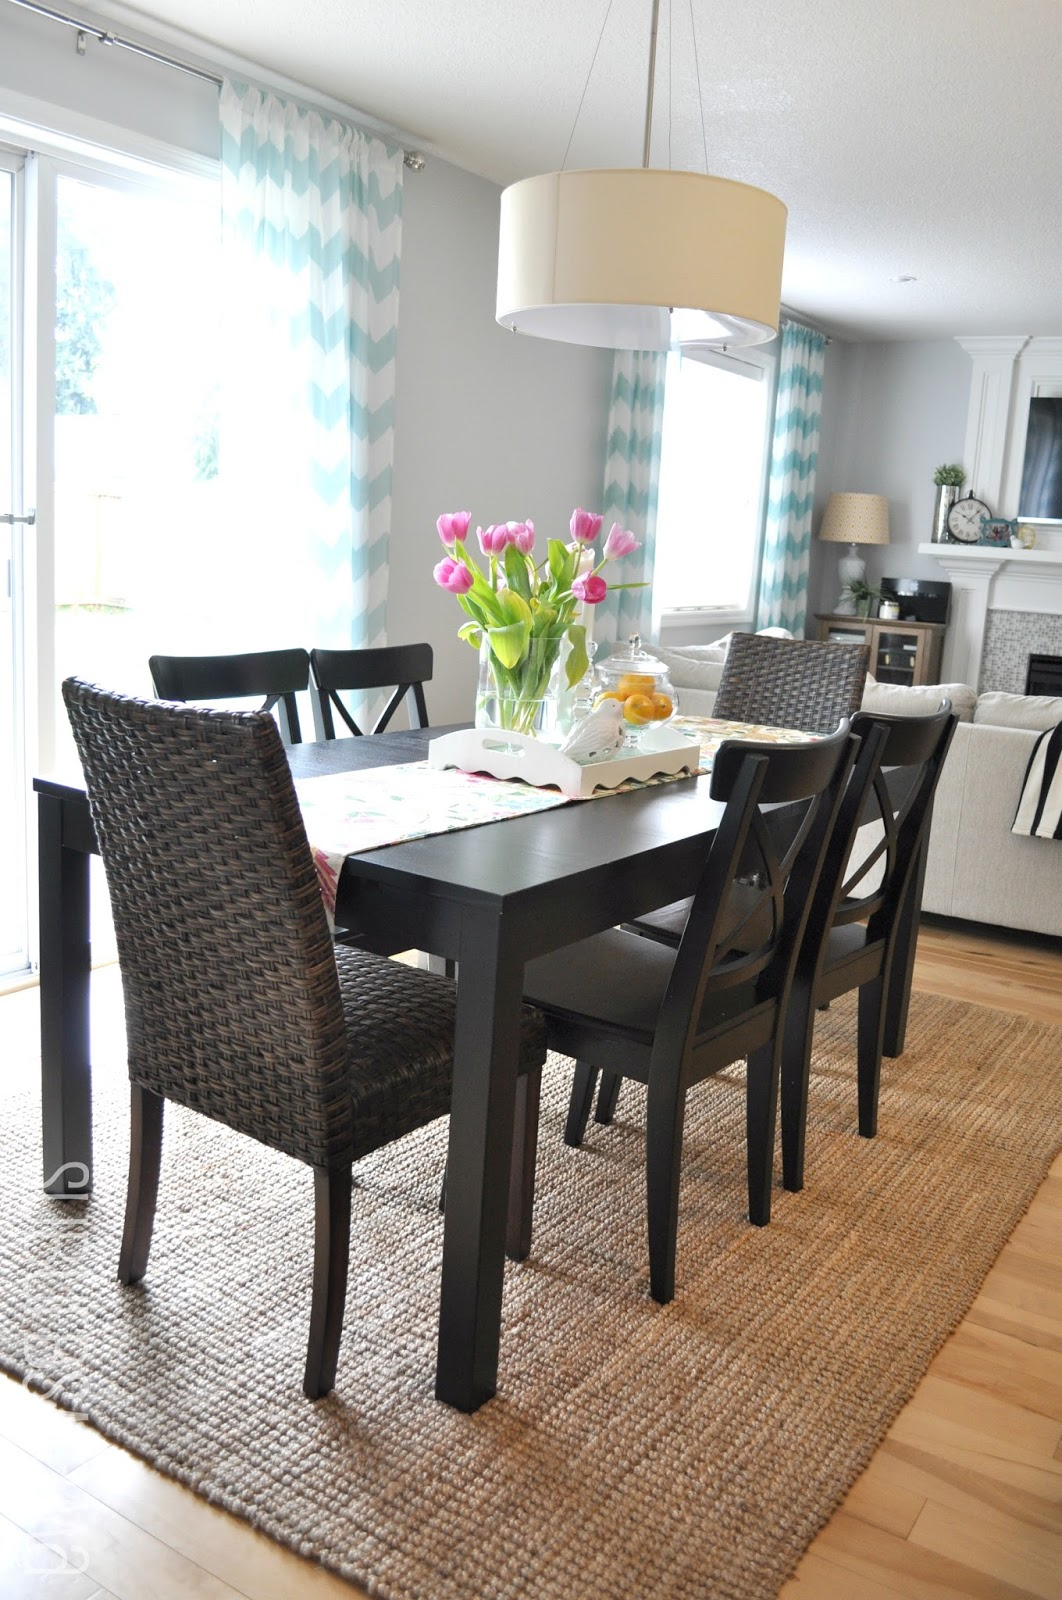 Suburbs mama dining area third times the charm for Dinette area ideas